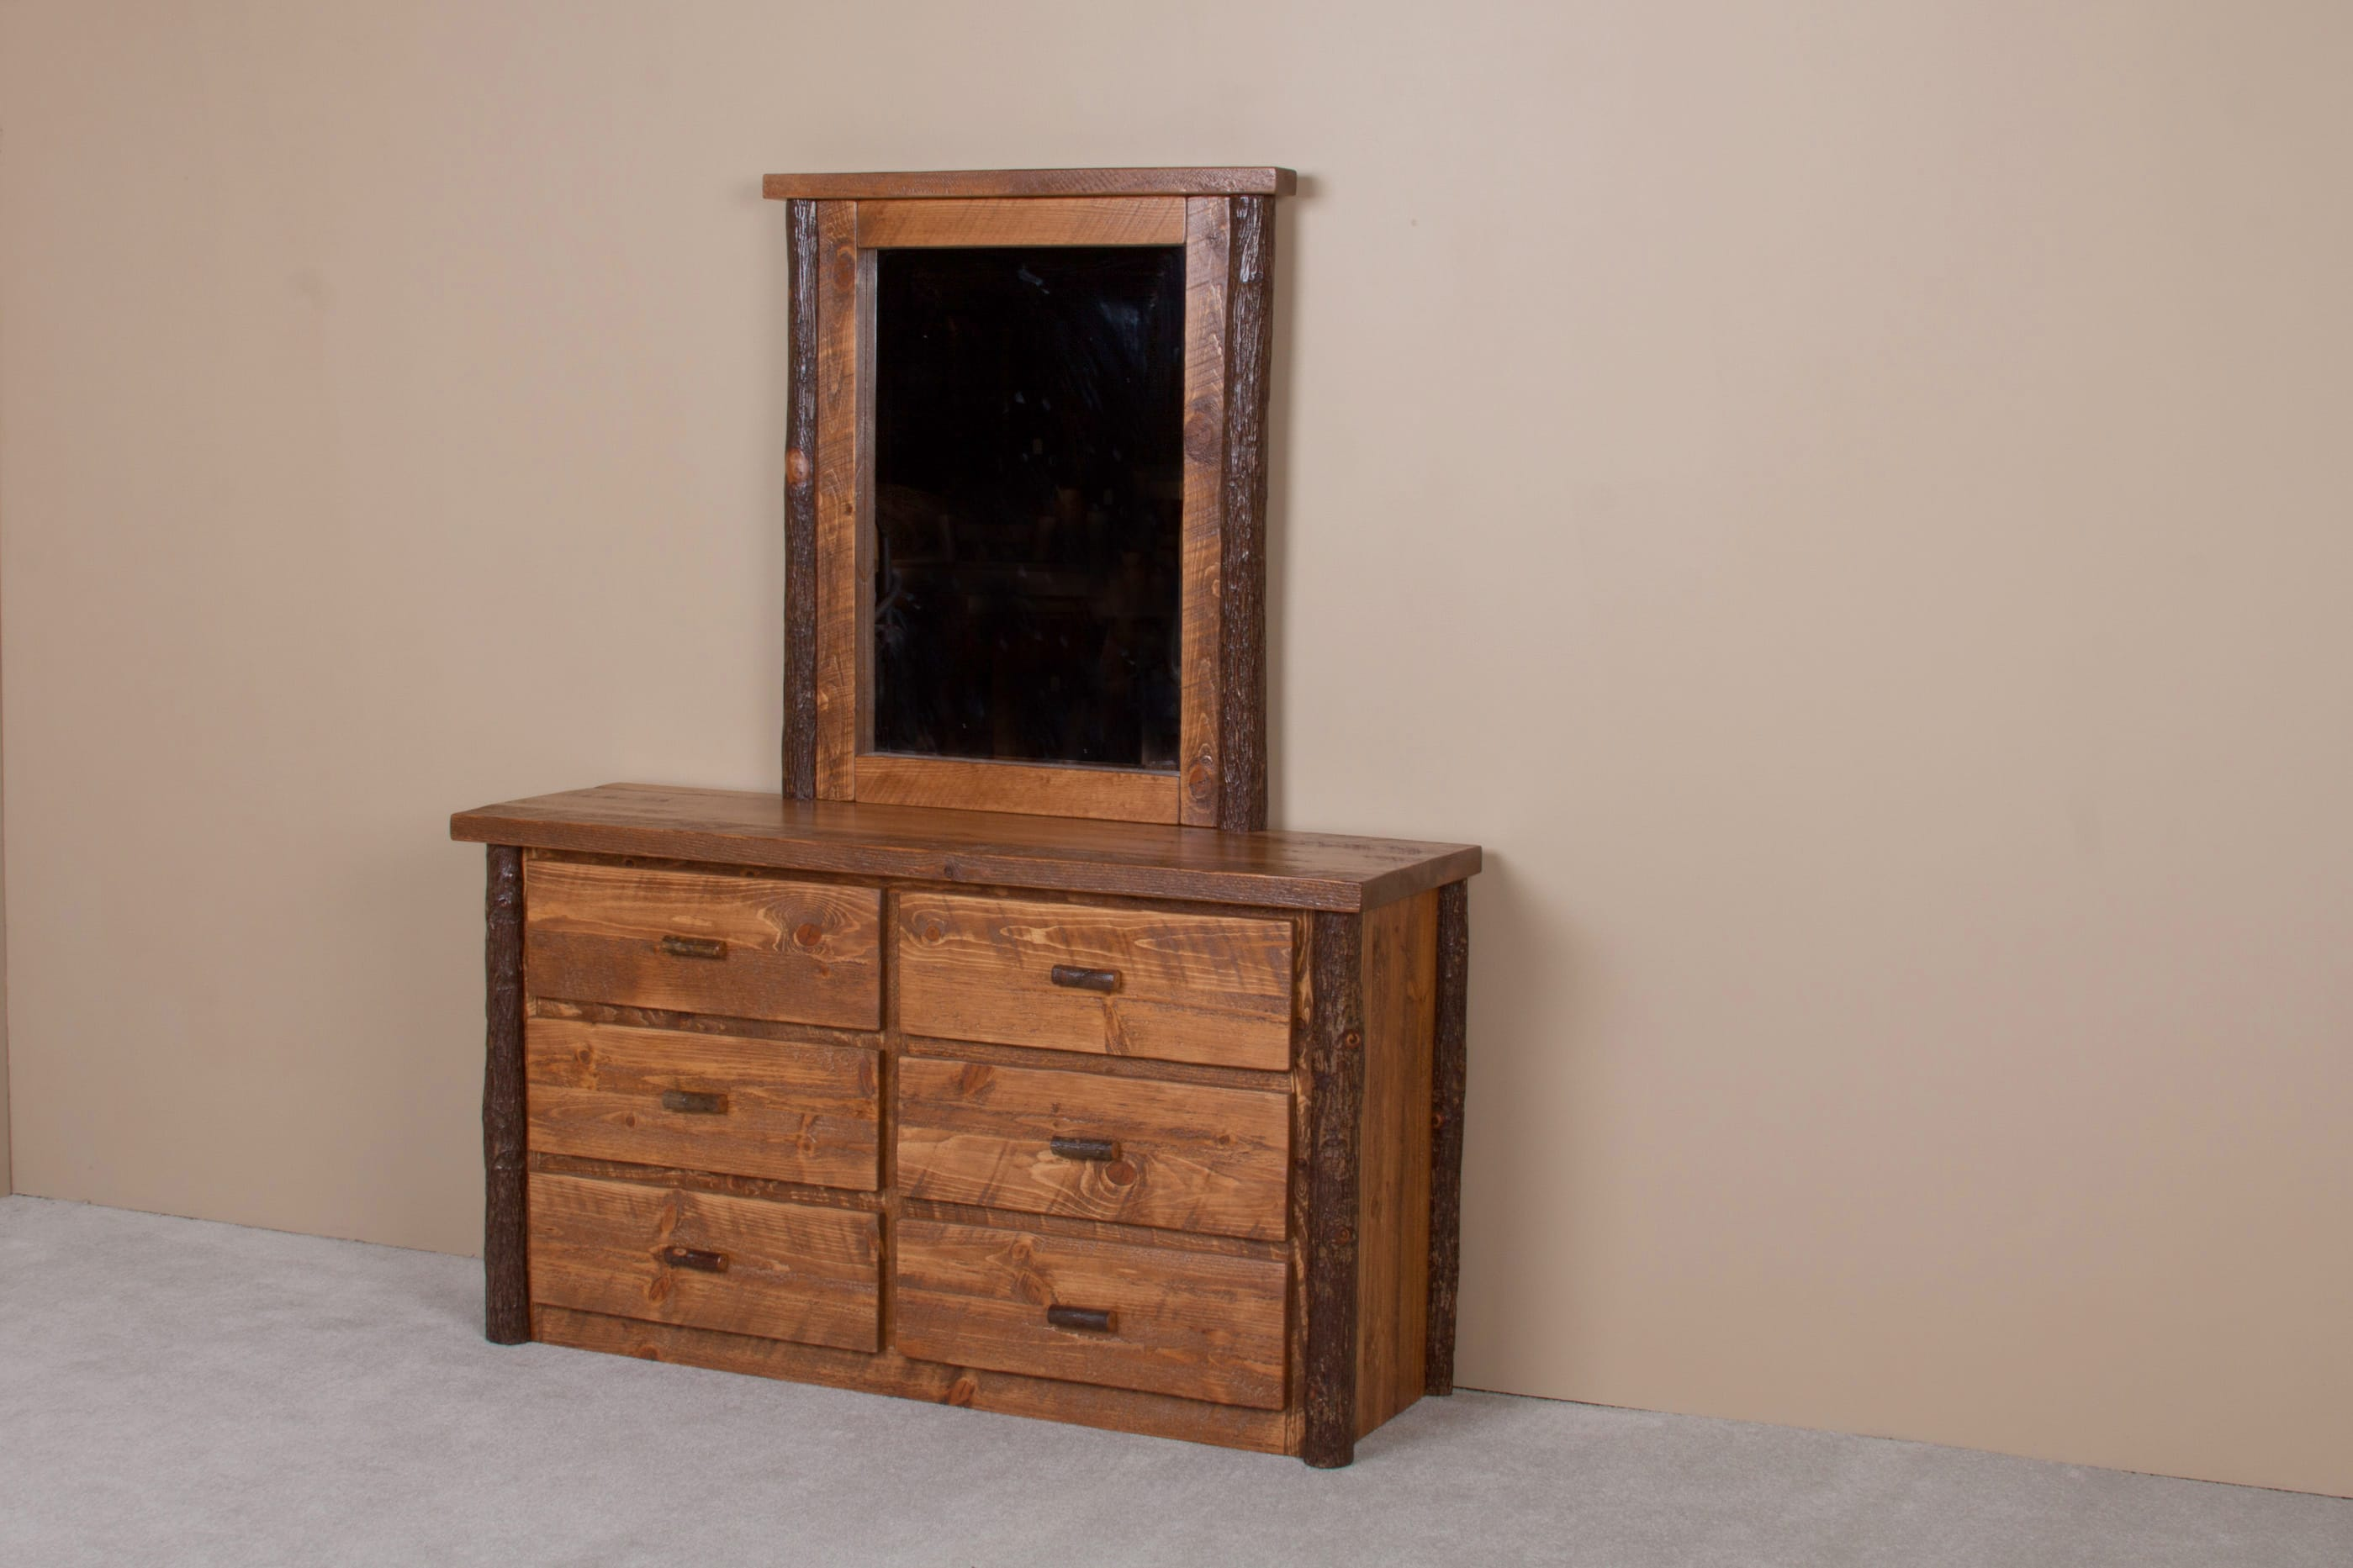 Sawtooth Hickory Honey Pine Dresser